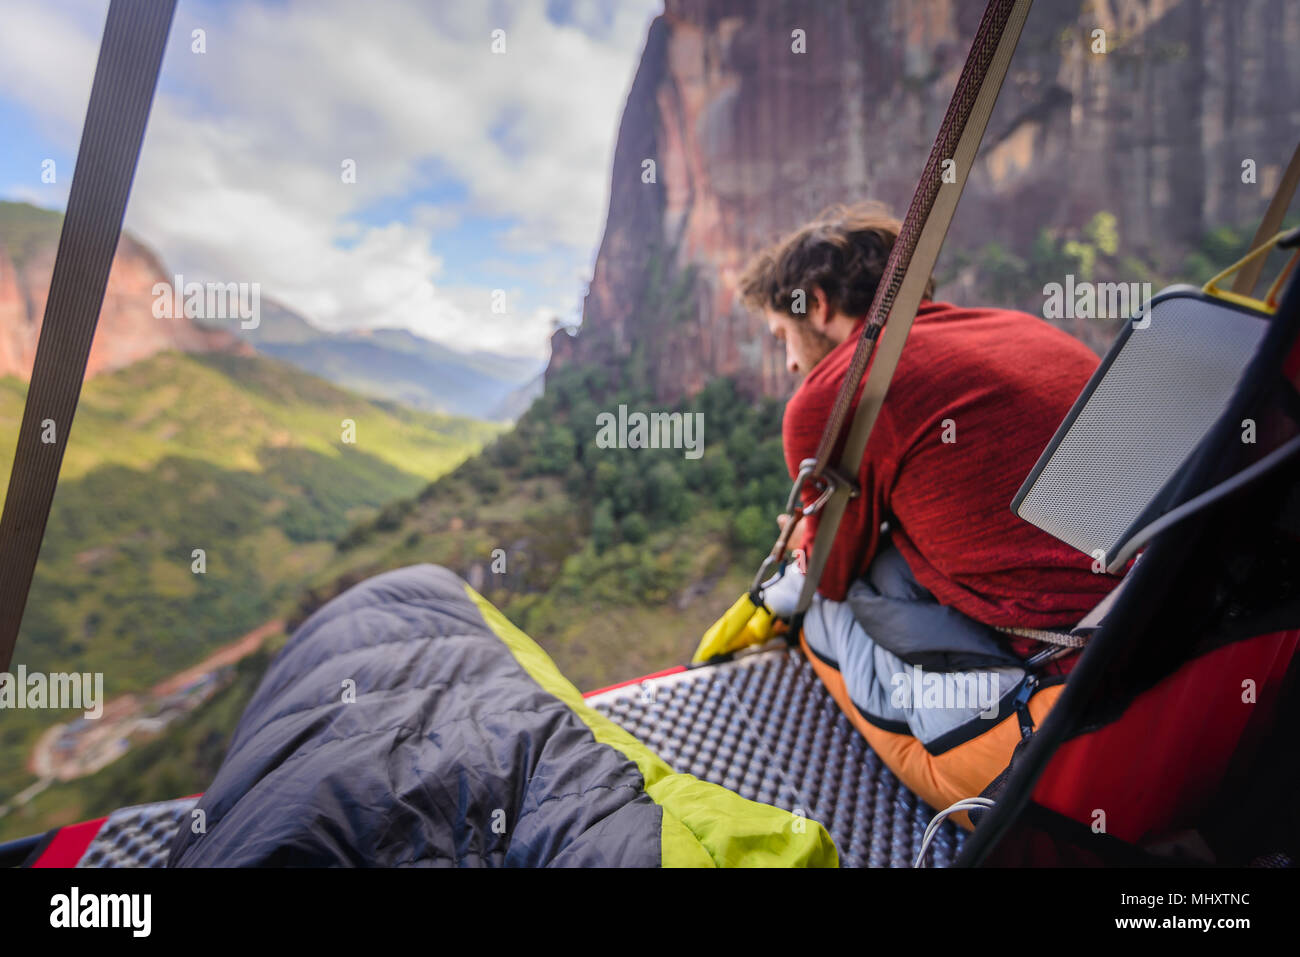 Rock climber sitting on portaledge, looking at view, Liming, Yunnan Province, China - Stock Image